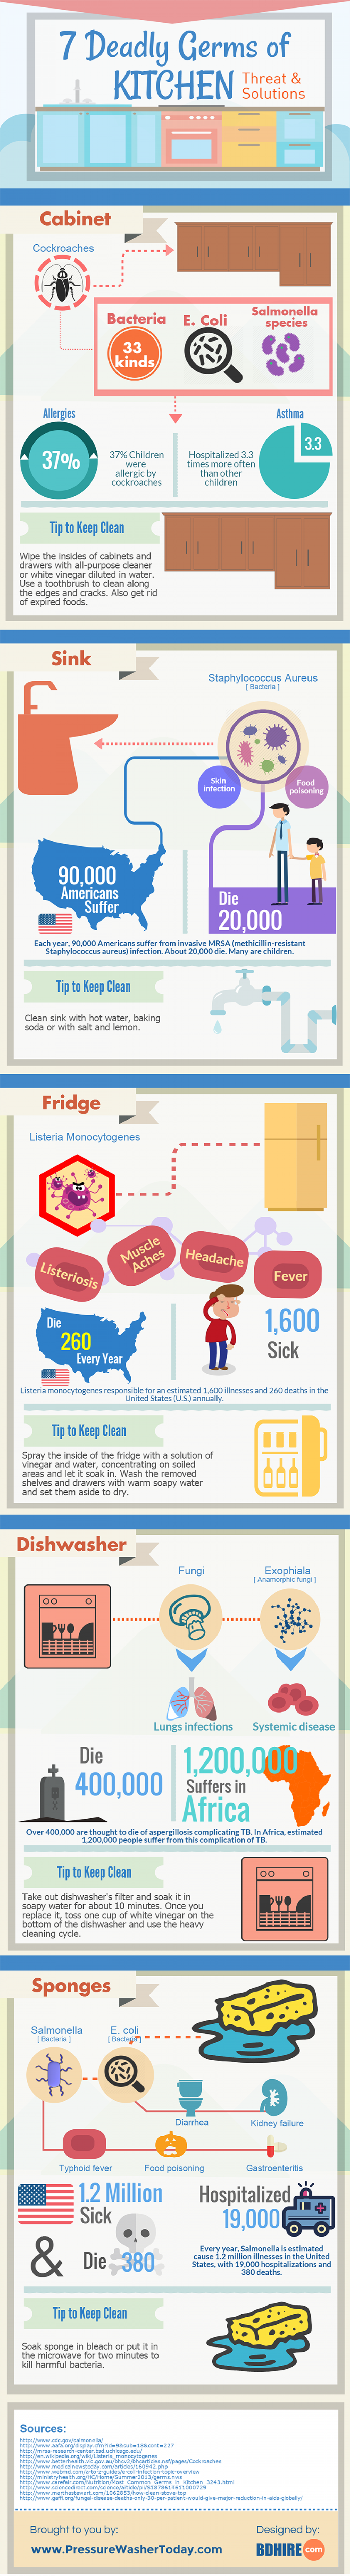 7 Deadly Germs of Kitchen  Infographic